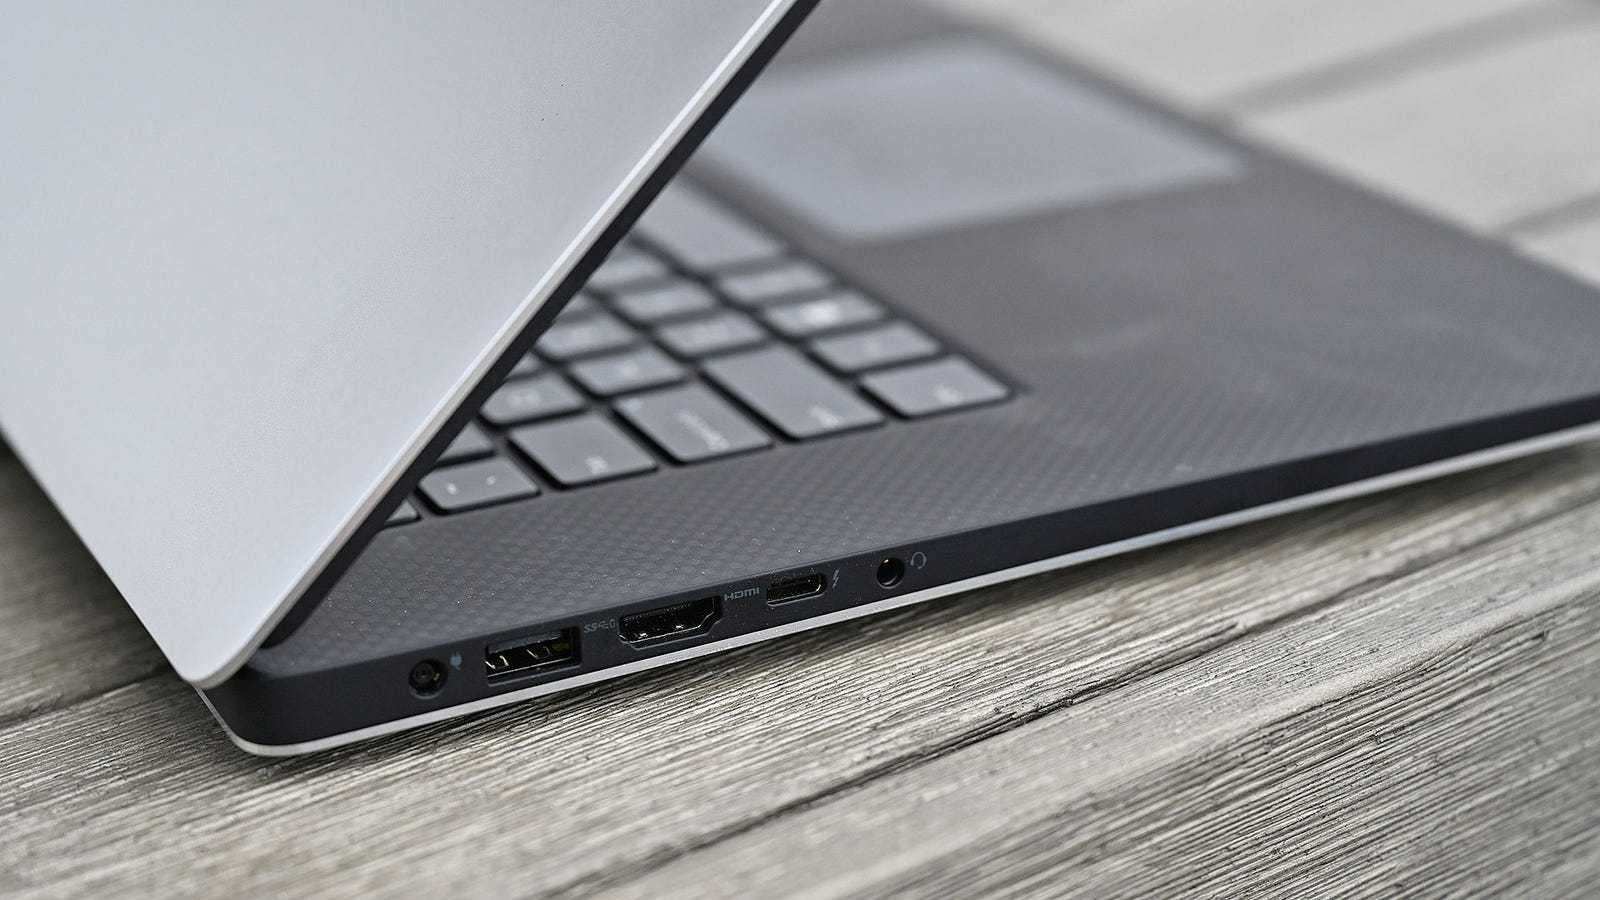 Illustration for article titled Dell XPS 15 Review: A Really Good Laptop for Almost Everything